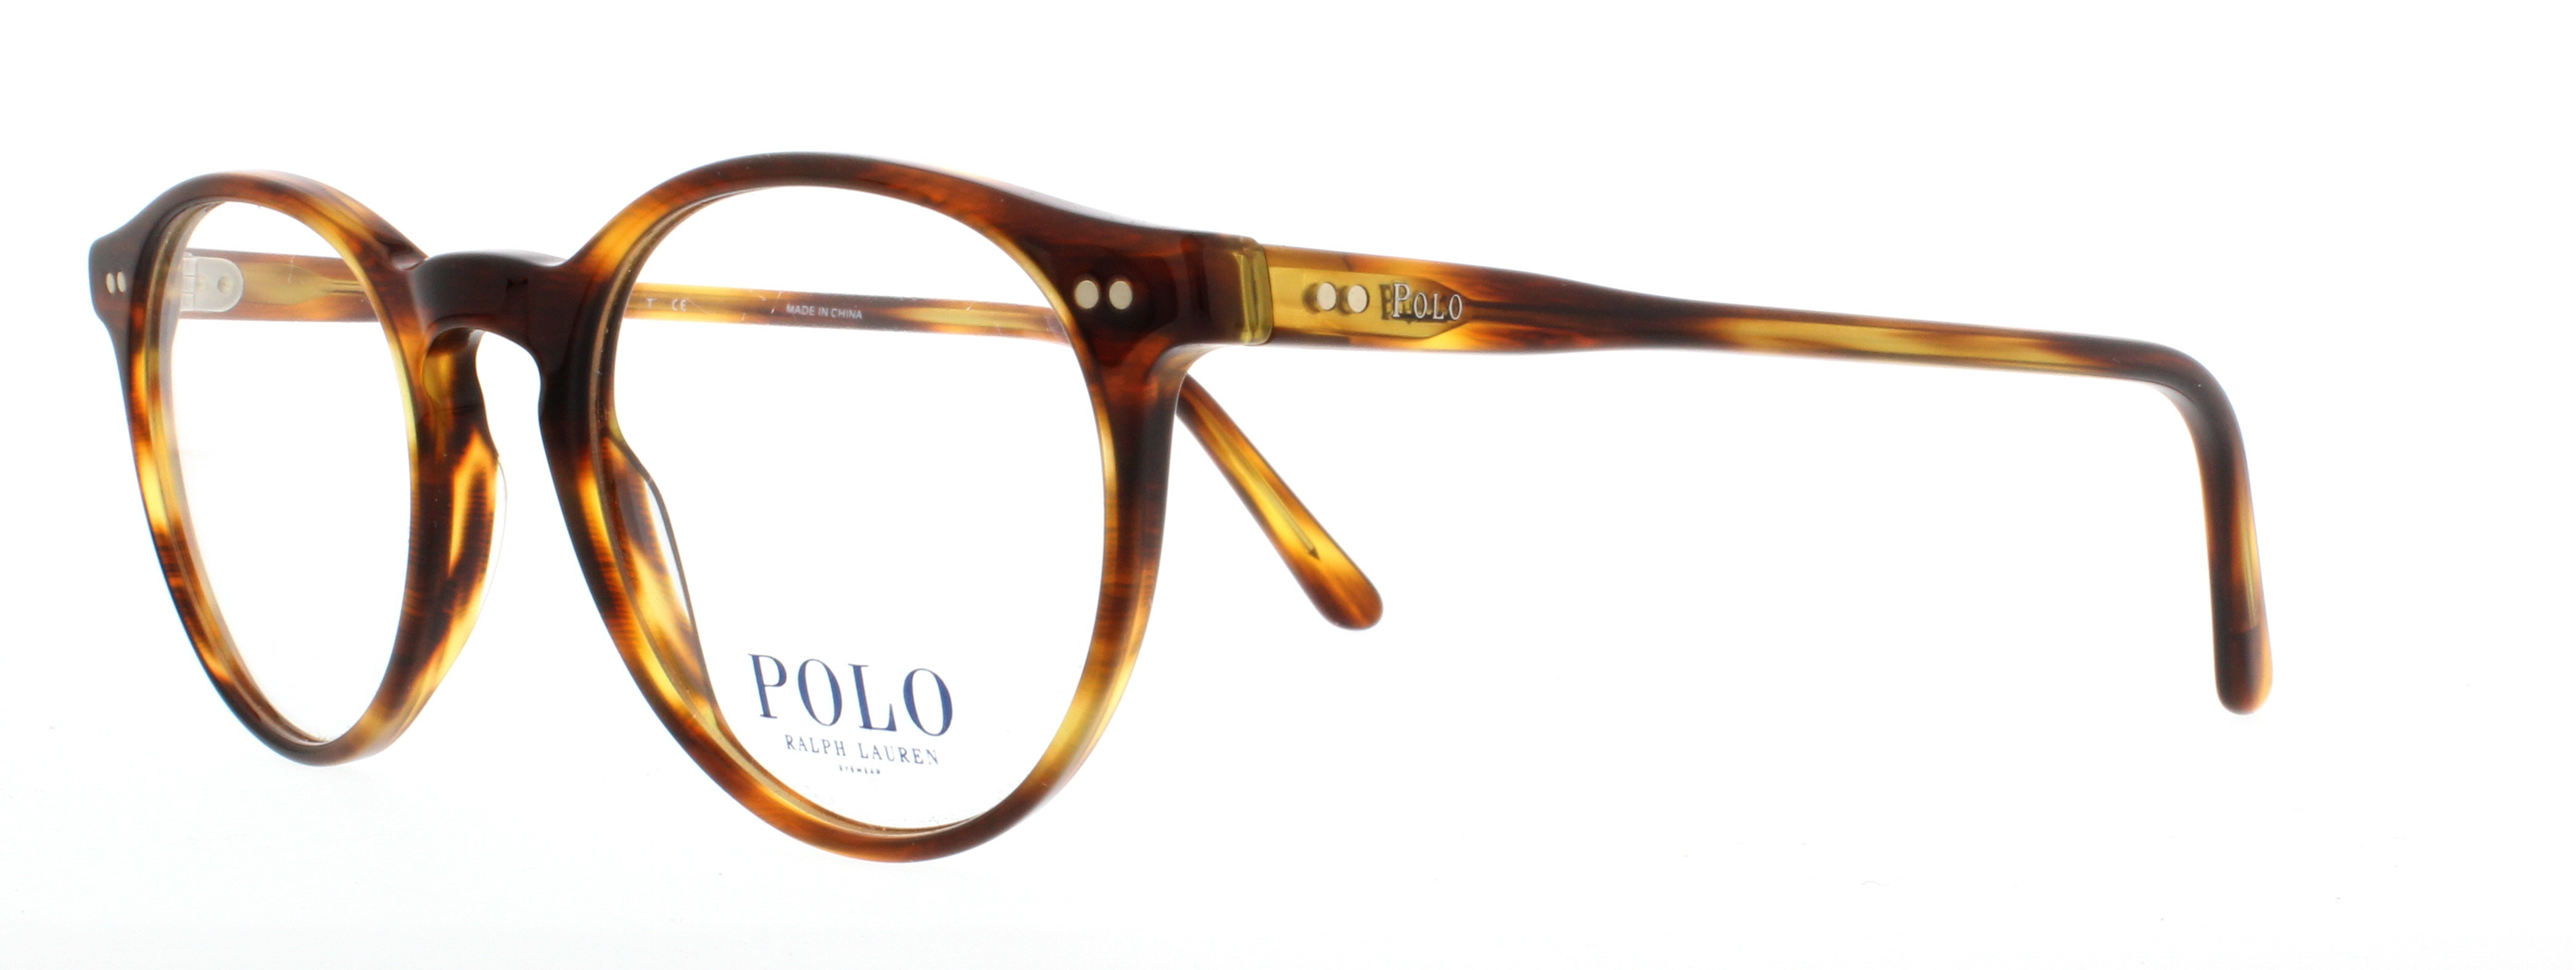 POLO Eyeglasses PH2083 5007 Havana Striped 48MM 713132376980 | eBay